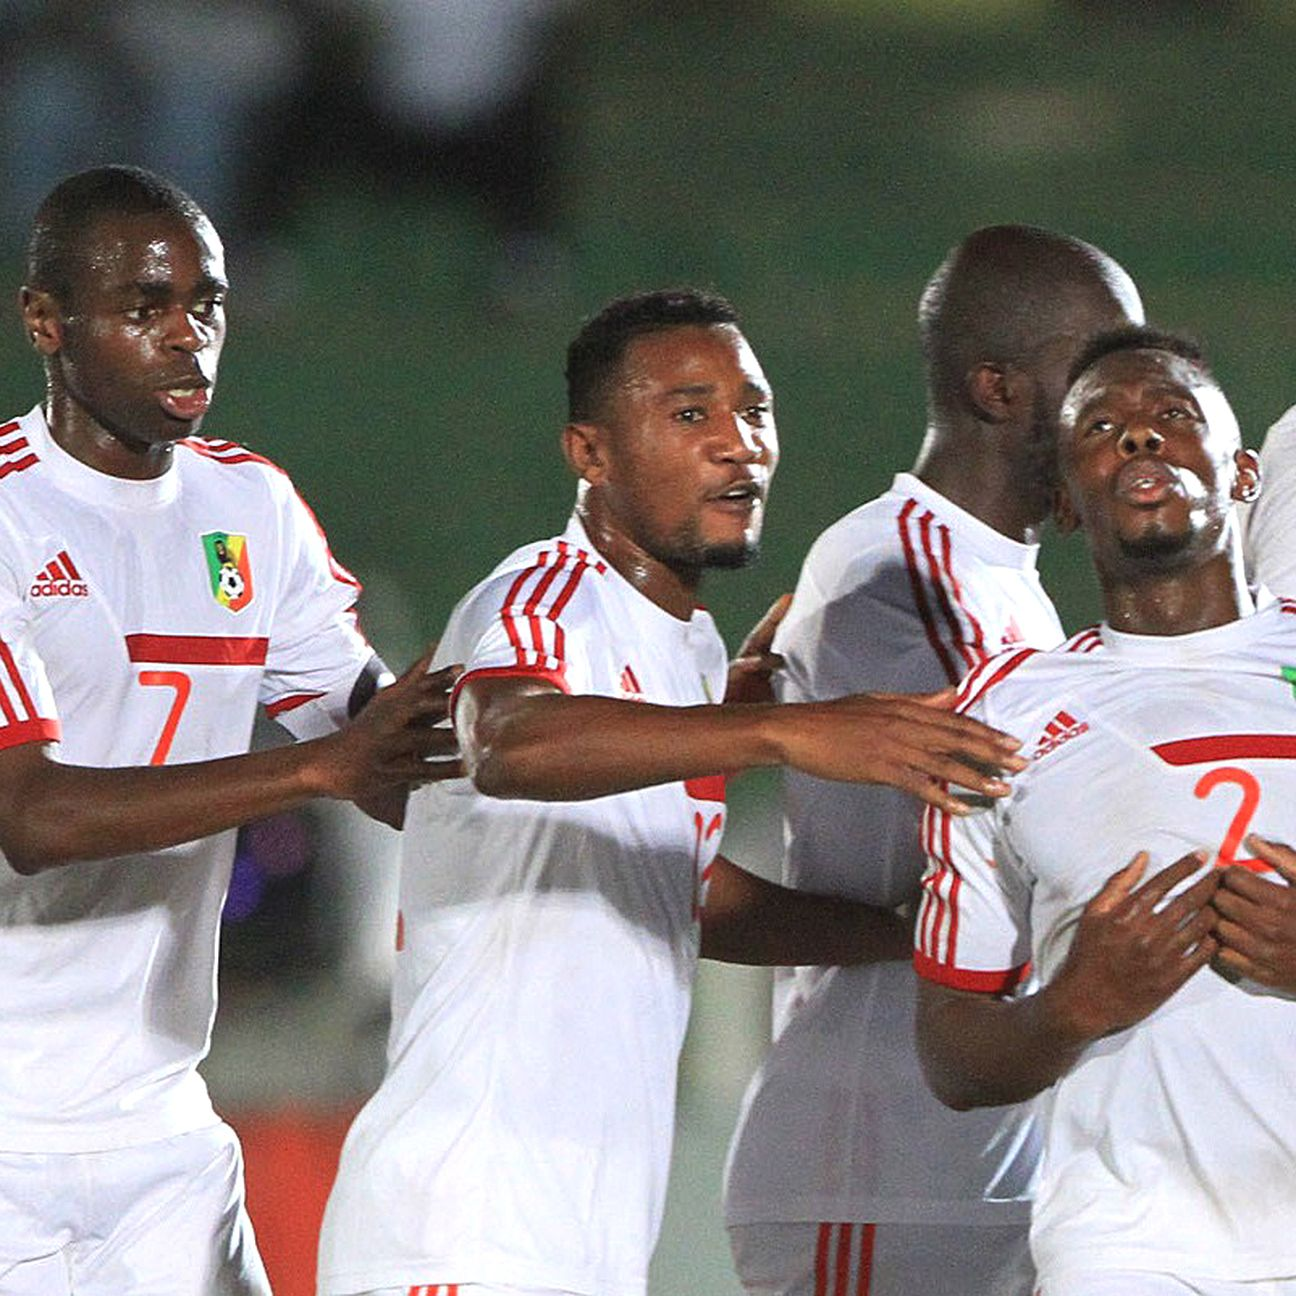 Congo are headed to their first African Nations' Cup since 2000.